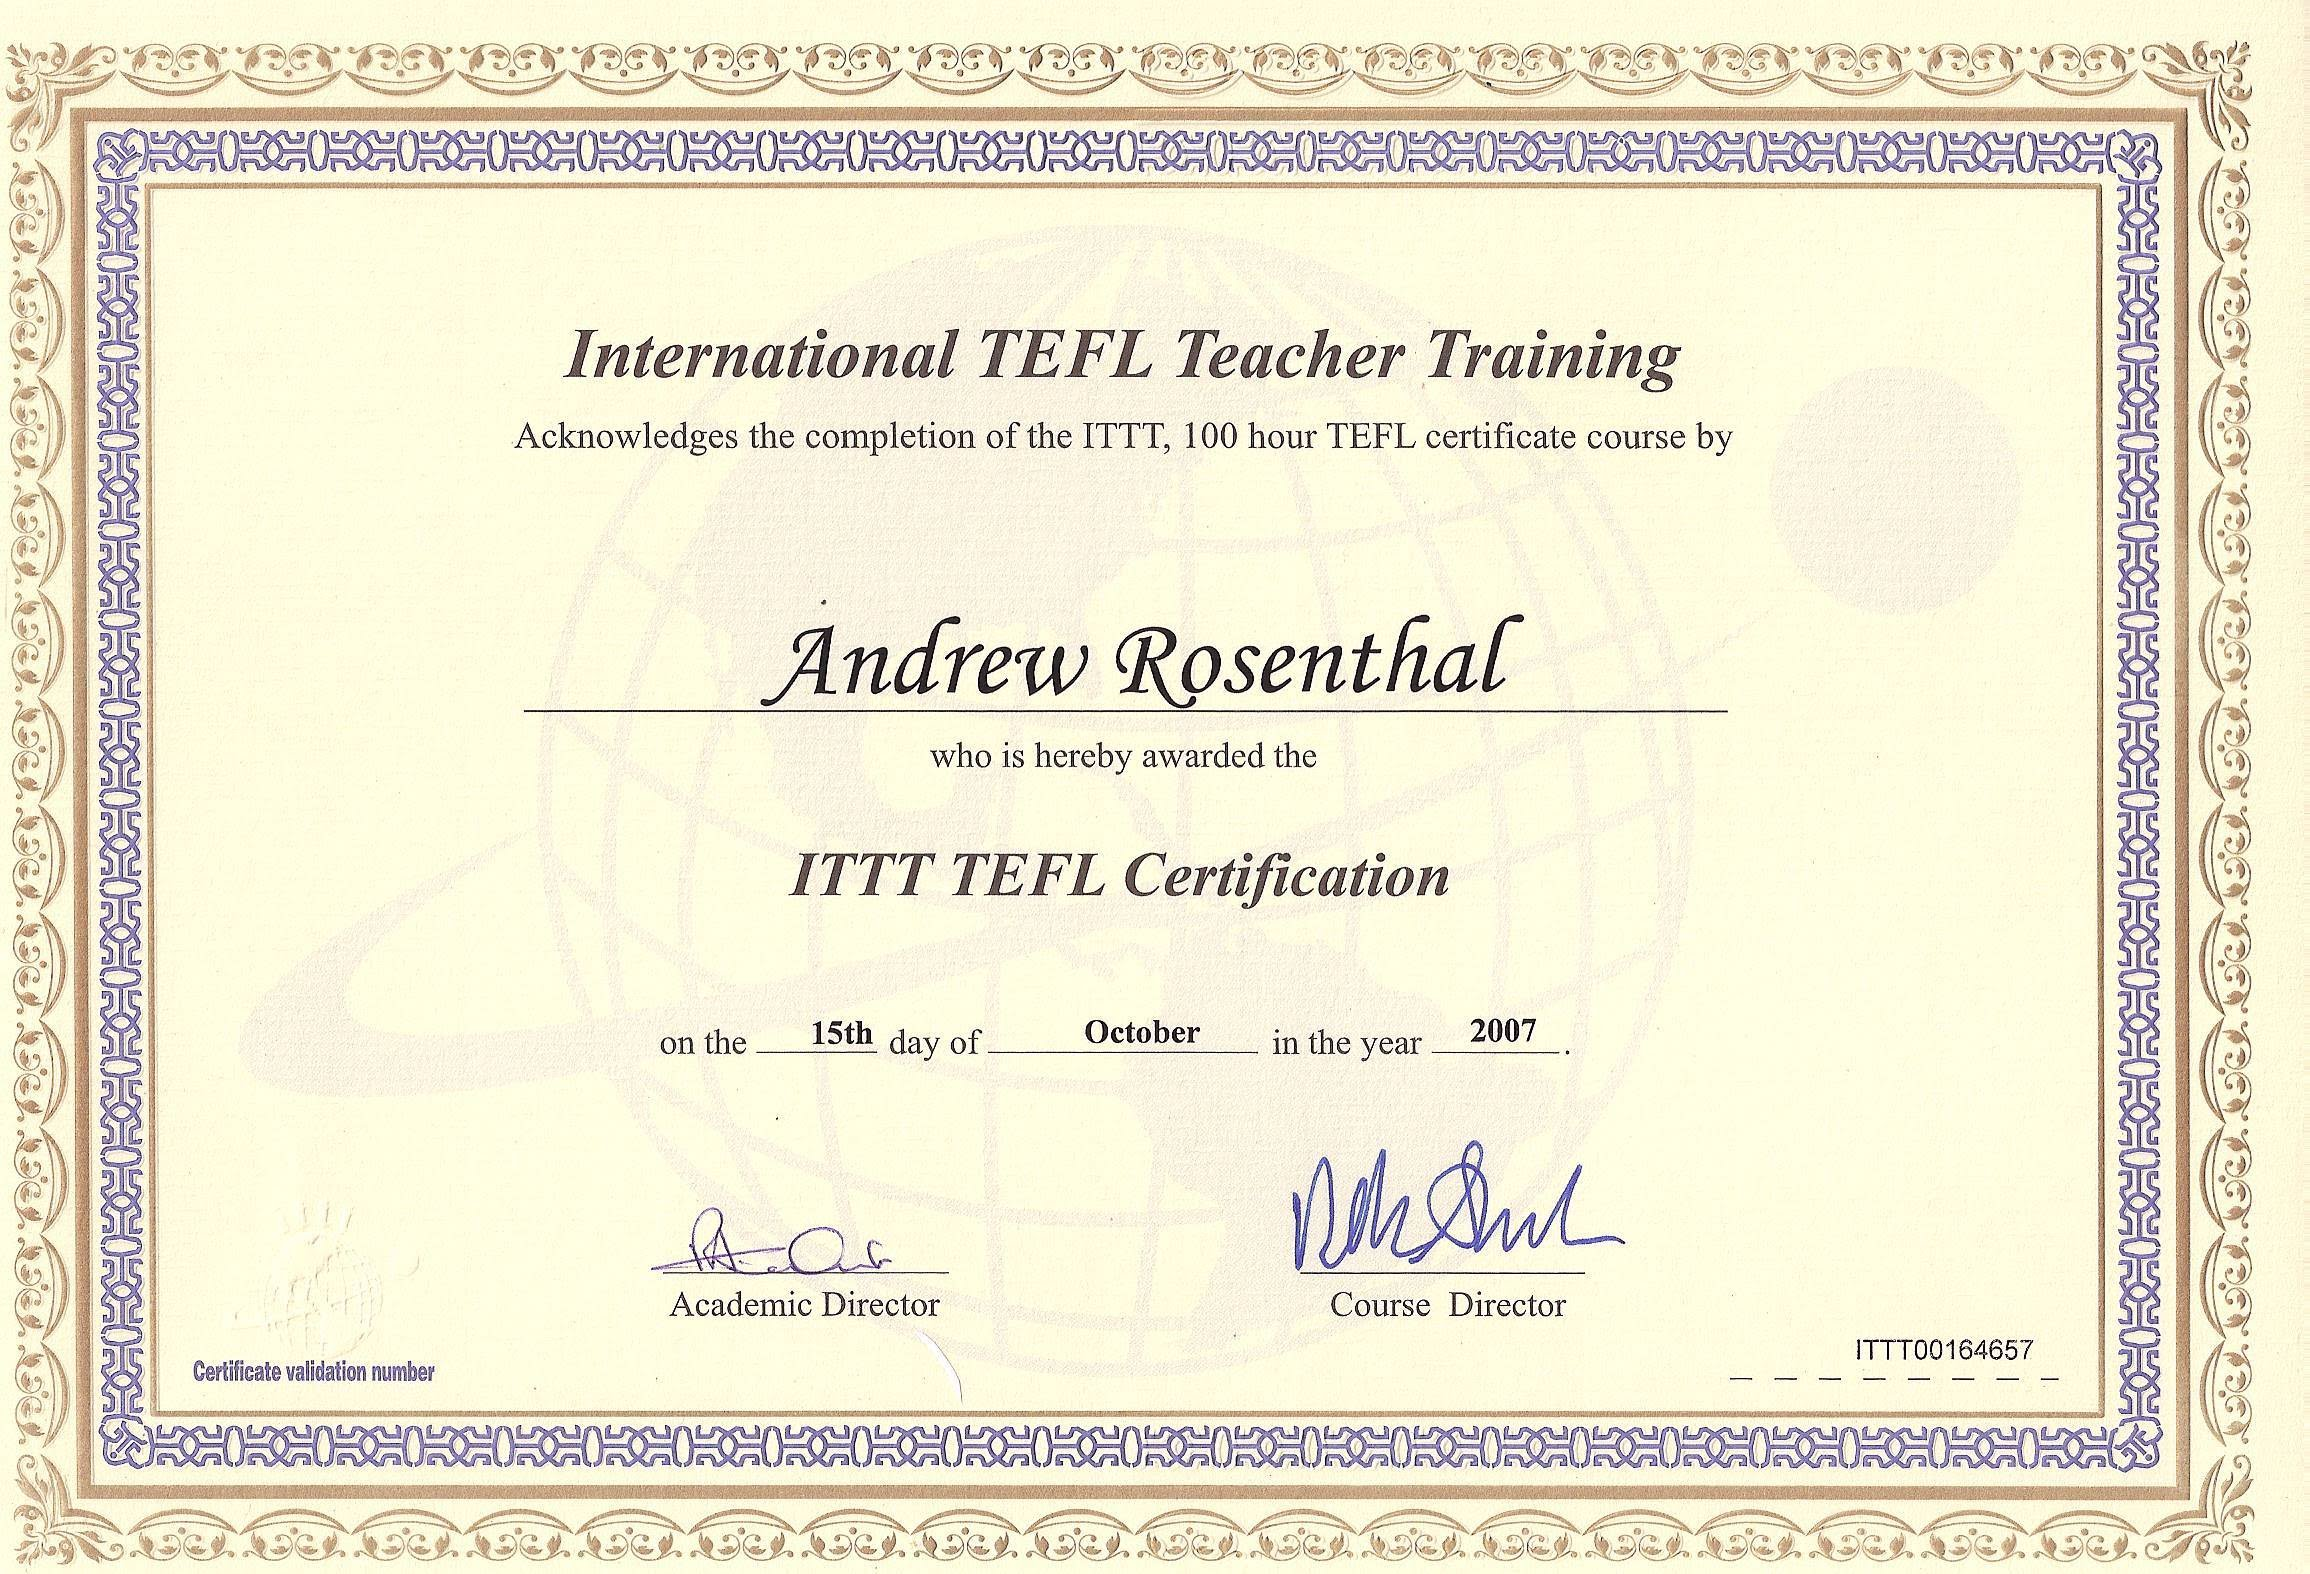 TEFL_Certificate Tefl Resume Format on portuguese resume, speaking resume, chemistry resume, tesol resume, psychology resume, communication resume, study abroad resume, biology resume, english resume, university resume, corporate training resume, jobs resume, family resume, food resume, history resume, teachers resume, leadership resume, coaching resume, international relations resume, female model resume,